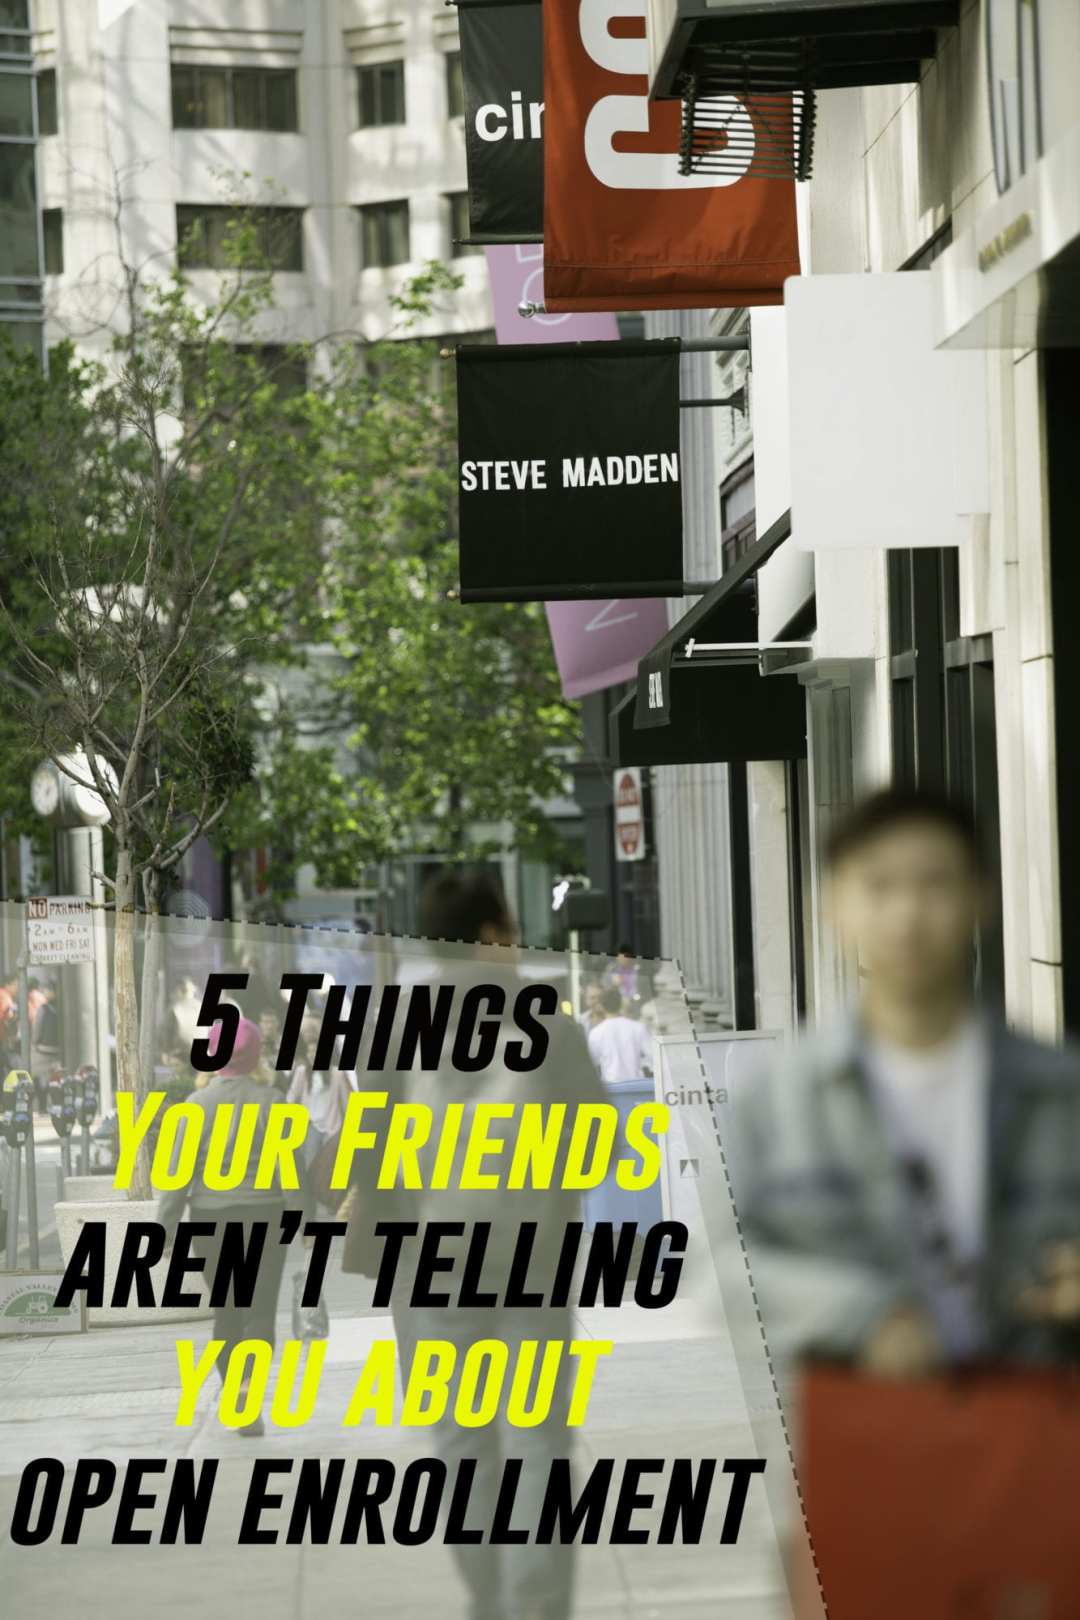 5 Things Things Your Friends Aren't Telling You About Open Enrollment